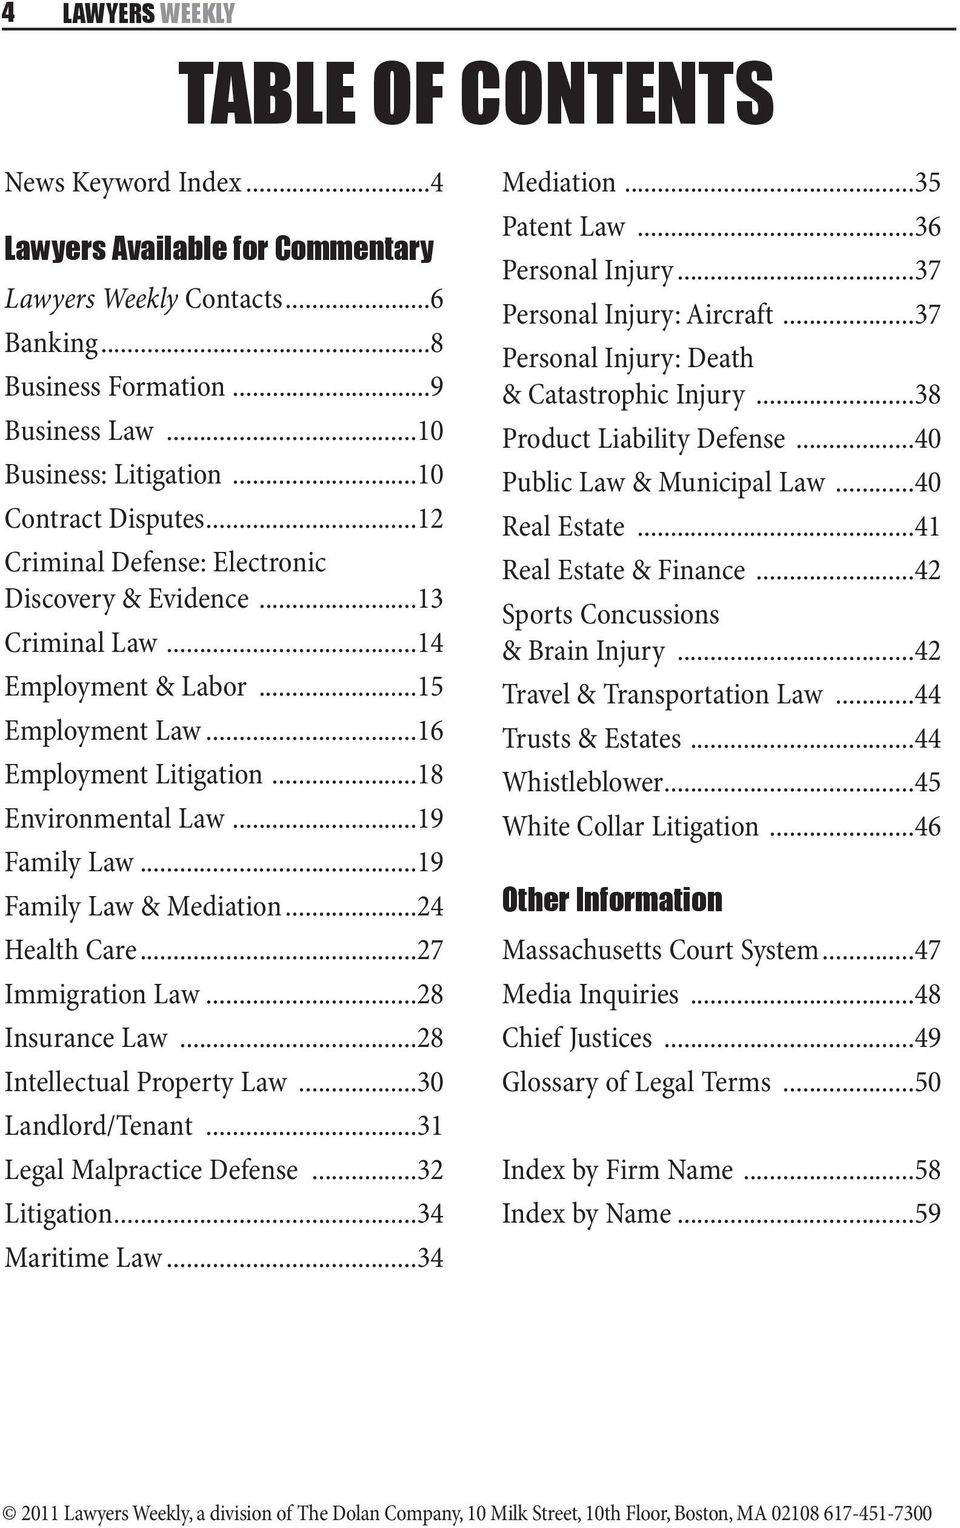 ..19 Family Law...19 Family Law & Mediation...24 Health Care...27 Immigration Law...28 Insurance Law...28 Intellectual Property Law...30 Landlord/Tenant...31 Legal Malpractice Defense...32 Litigation.